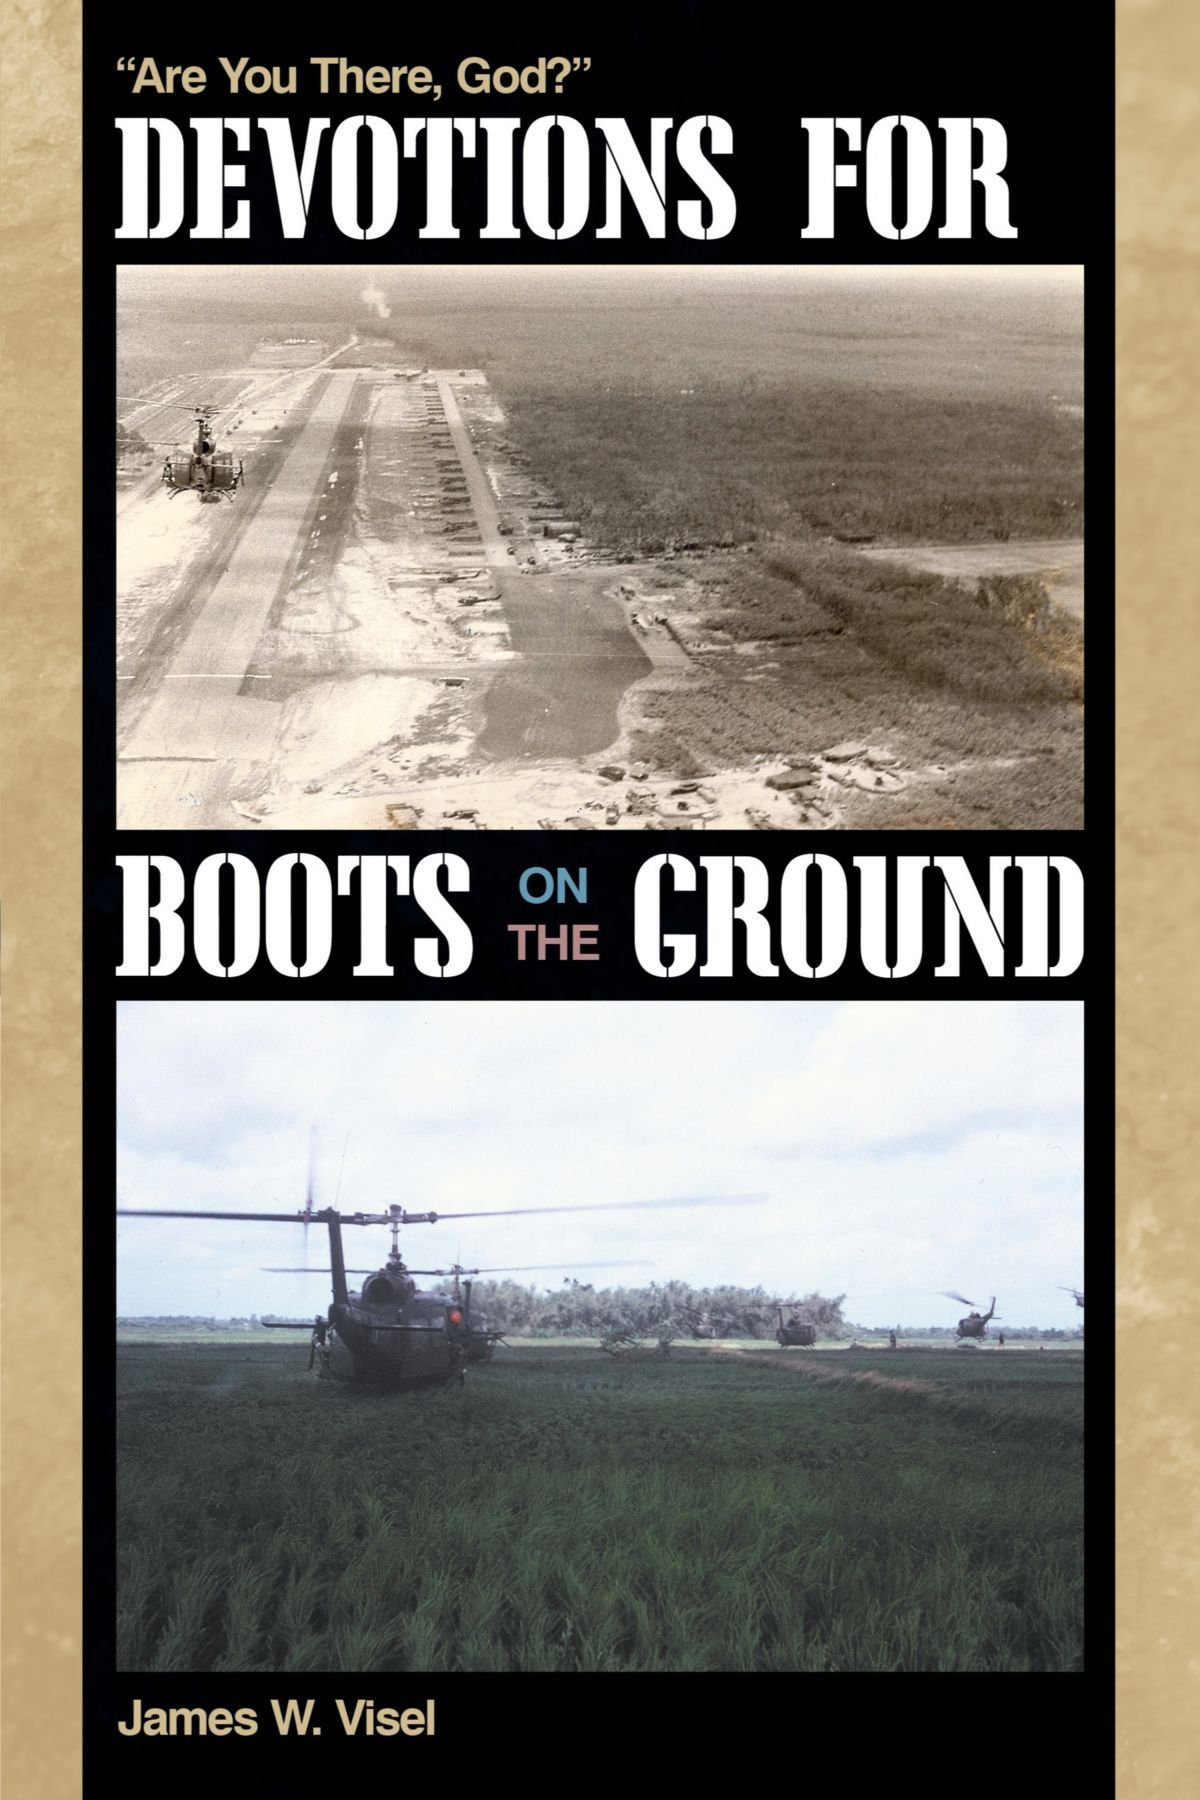 Devotions For Boots on the Ground:Are You There, God?